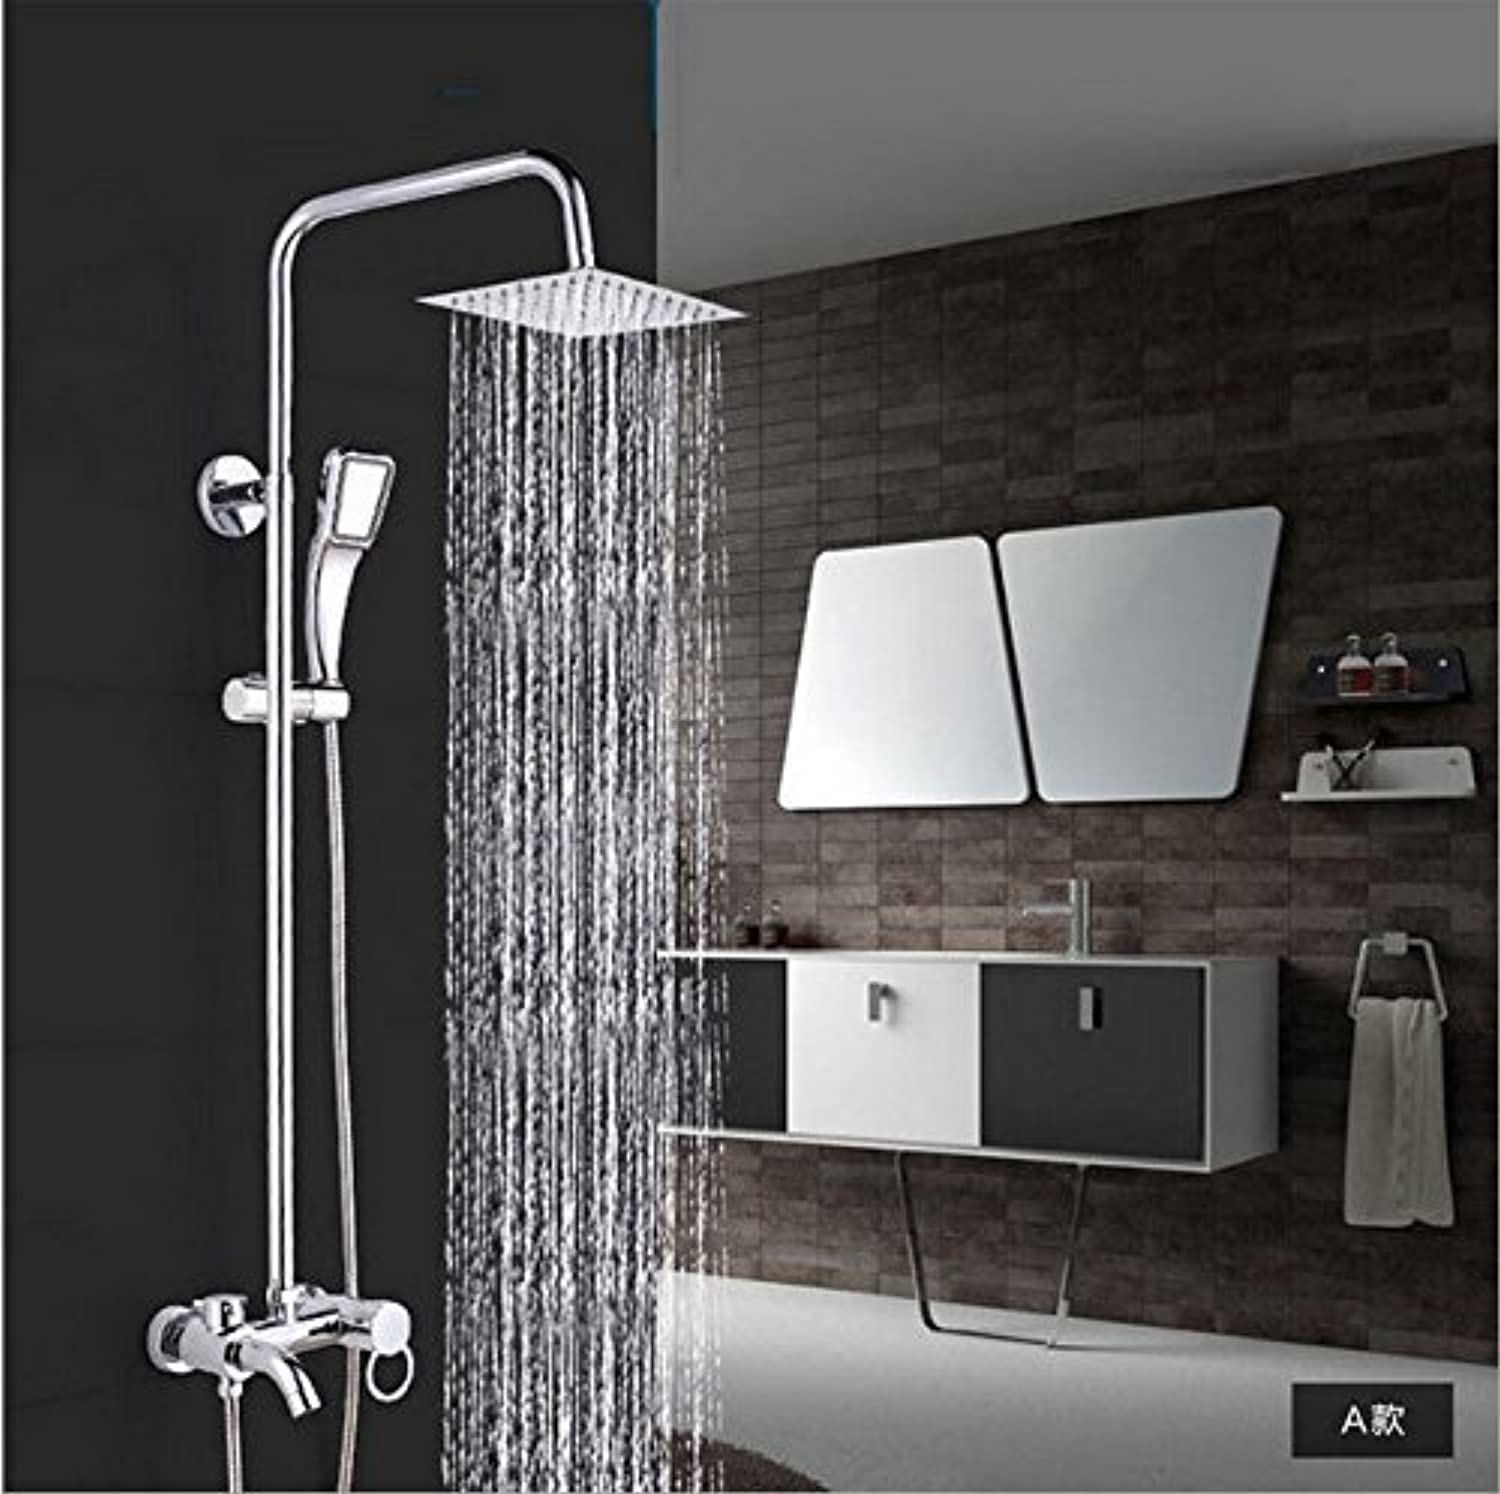 The Bathroom All Three Squares Three Functions Shower Shower Shower Hot Water